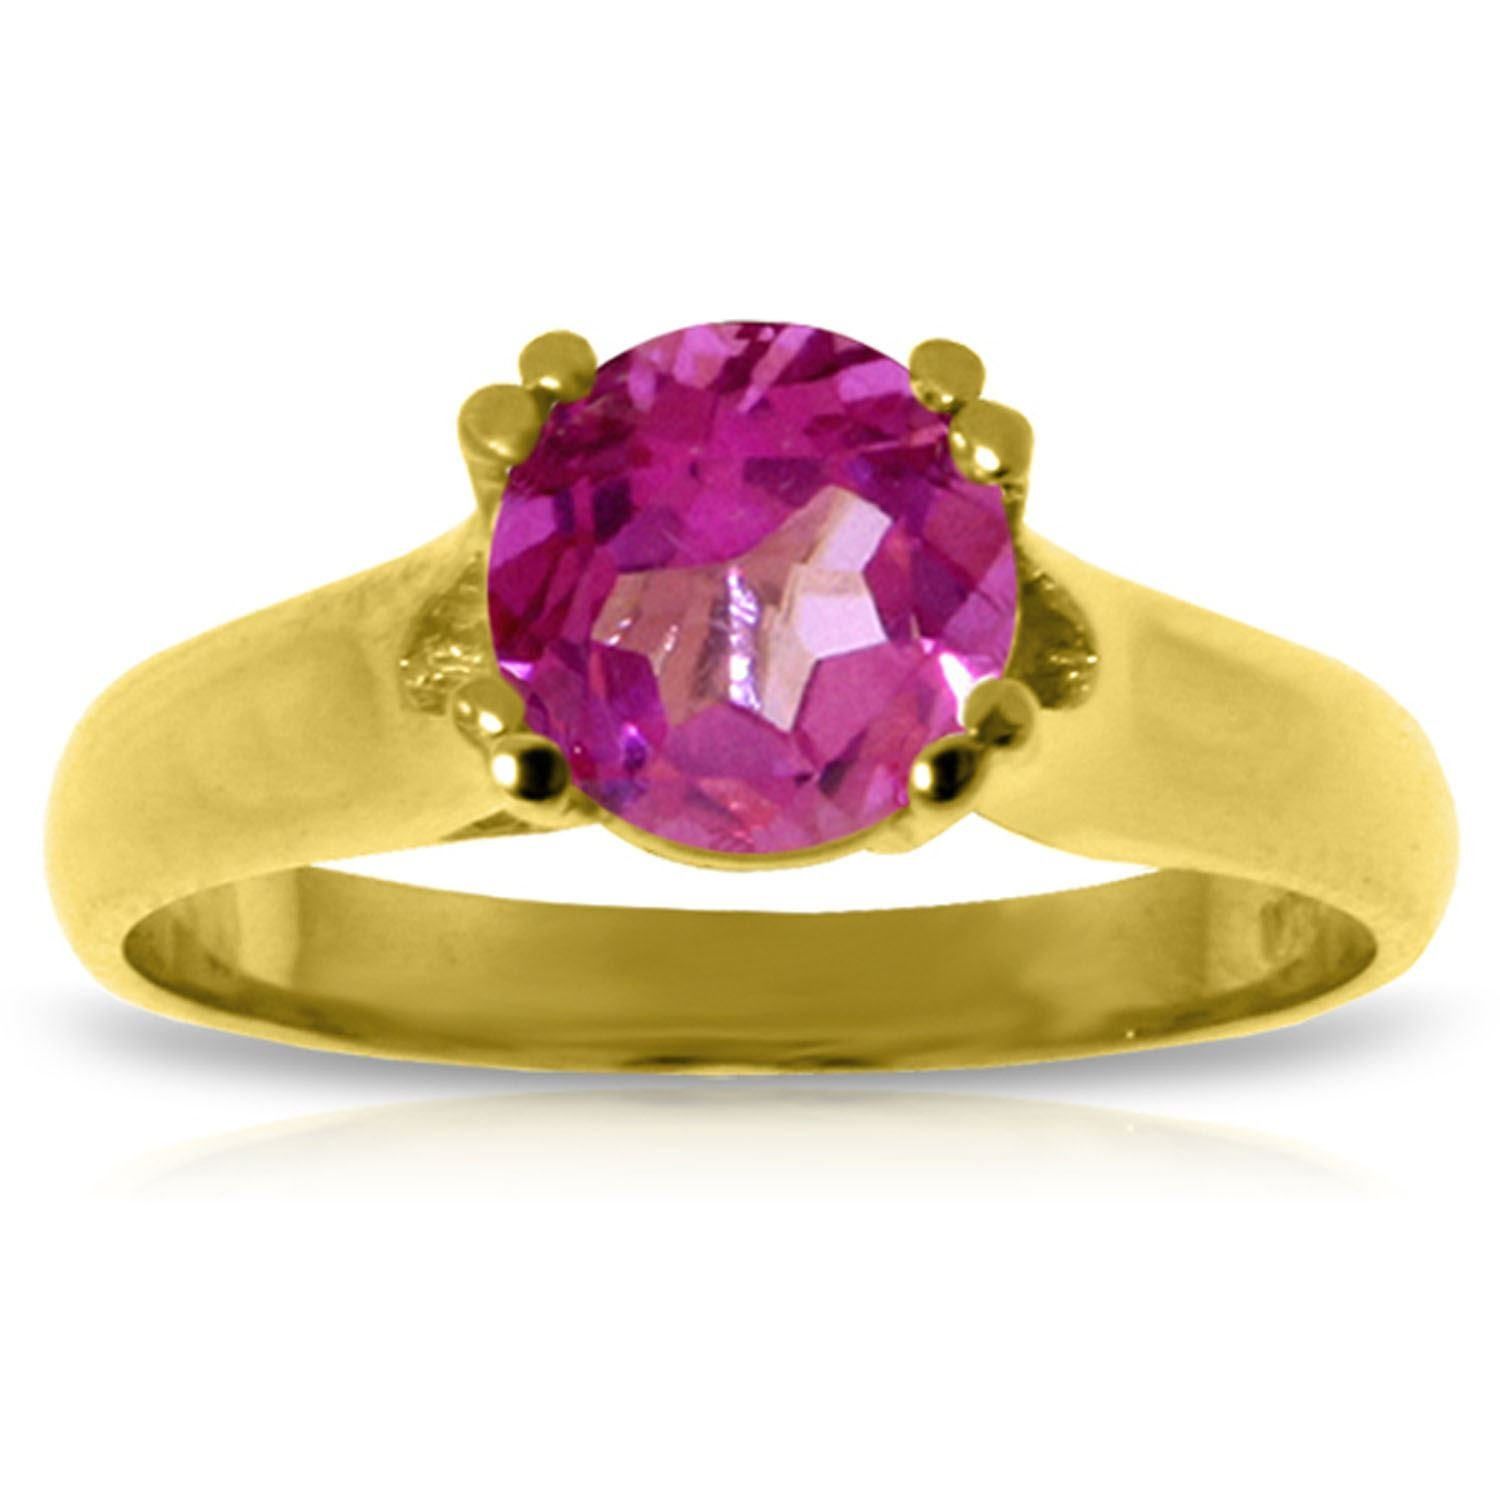 ALARRI 1.1 Carat 14K Solid Gold Love Doesn't Outgrow Pink Topaz Ring With Ring Size 9.5 by ALARRI (Image #2)